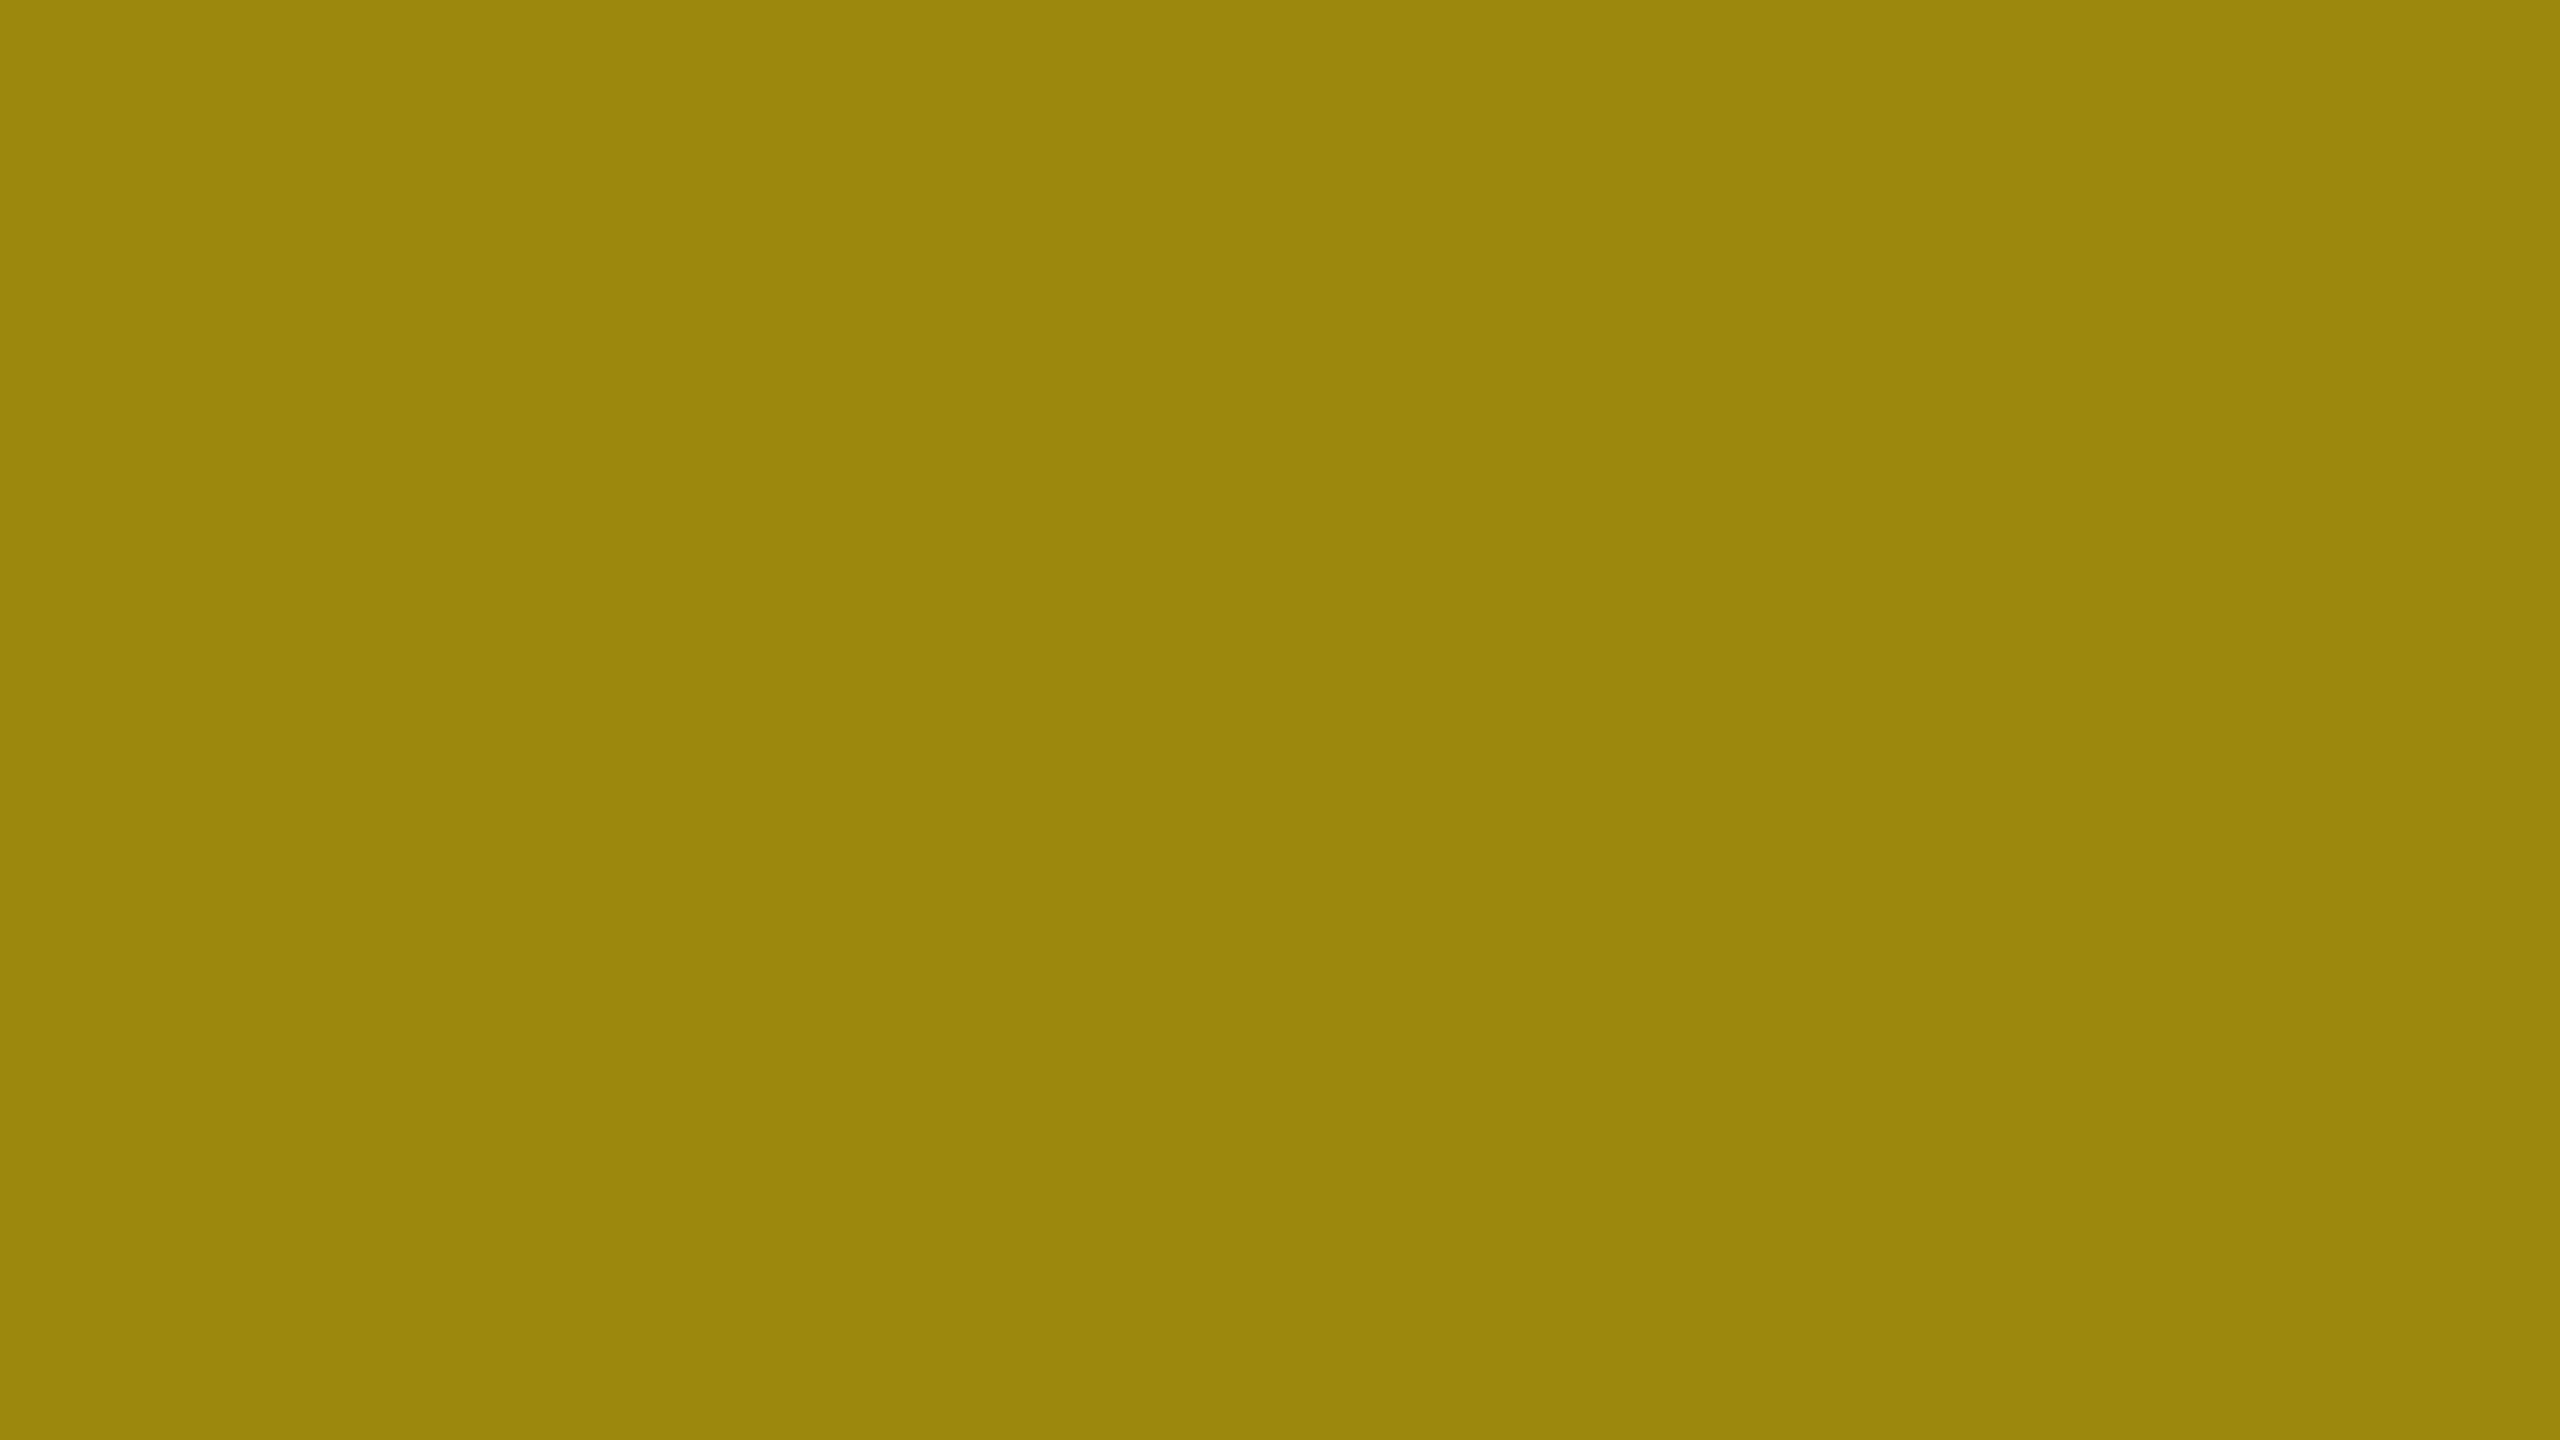 Solid Yellow Wallpaper 62 Images